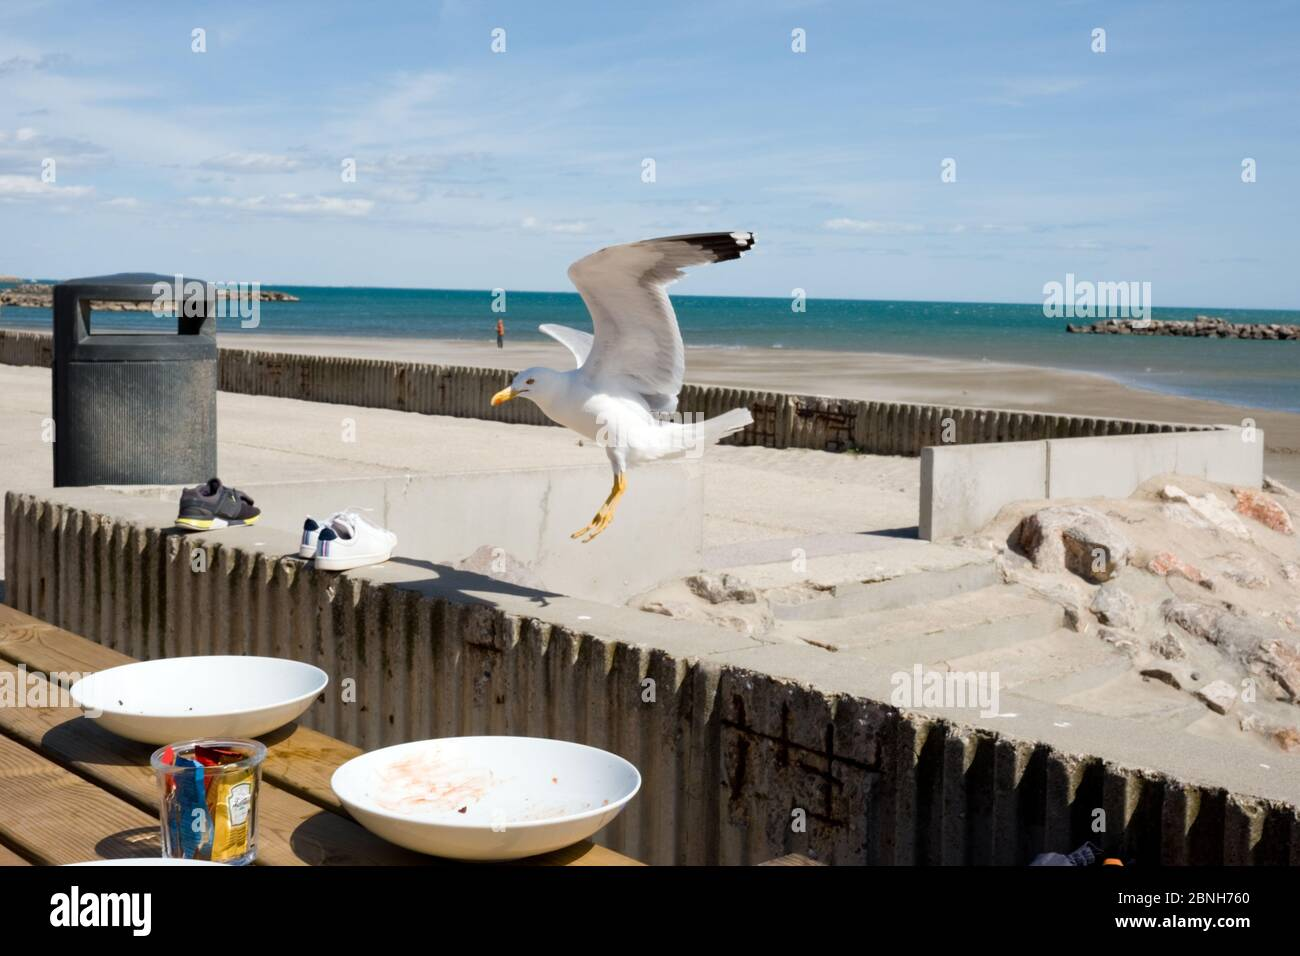 a seagull about to land on a wall near a table with empty plates at a beach side restaurant in southern france Stock Photo